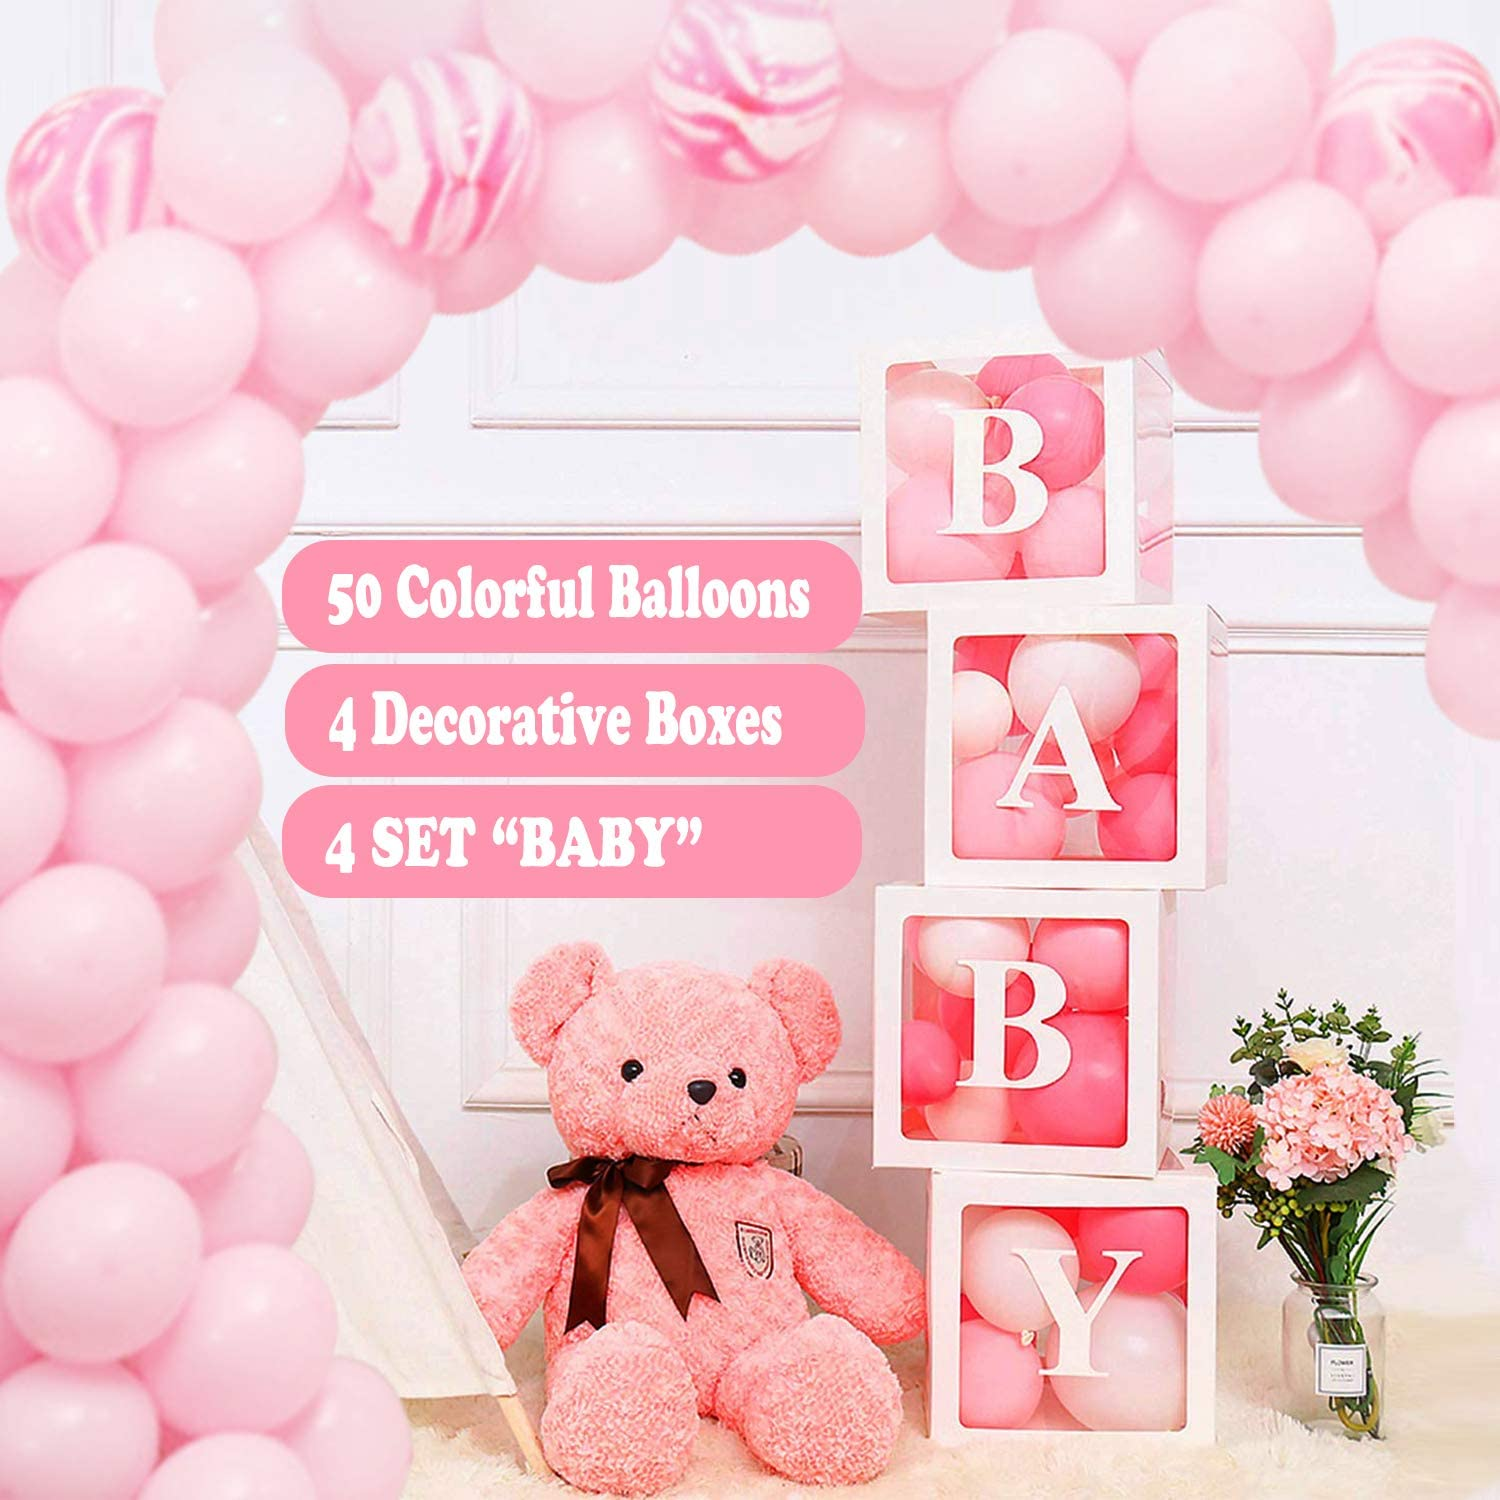 Baby Shower Boxes Party Decorations – Edge Transparent Balloons Boxes with Letter, 50pcs Balloons, Individual BABY Block for Boy Girl Bridal Showers Party Gender Reveal Backdrop (White)